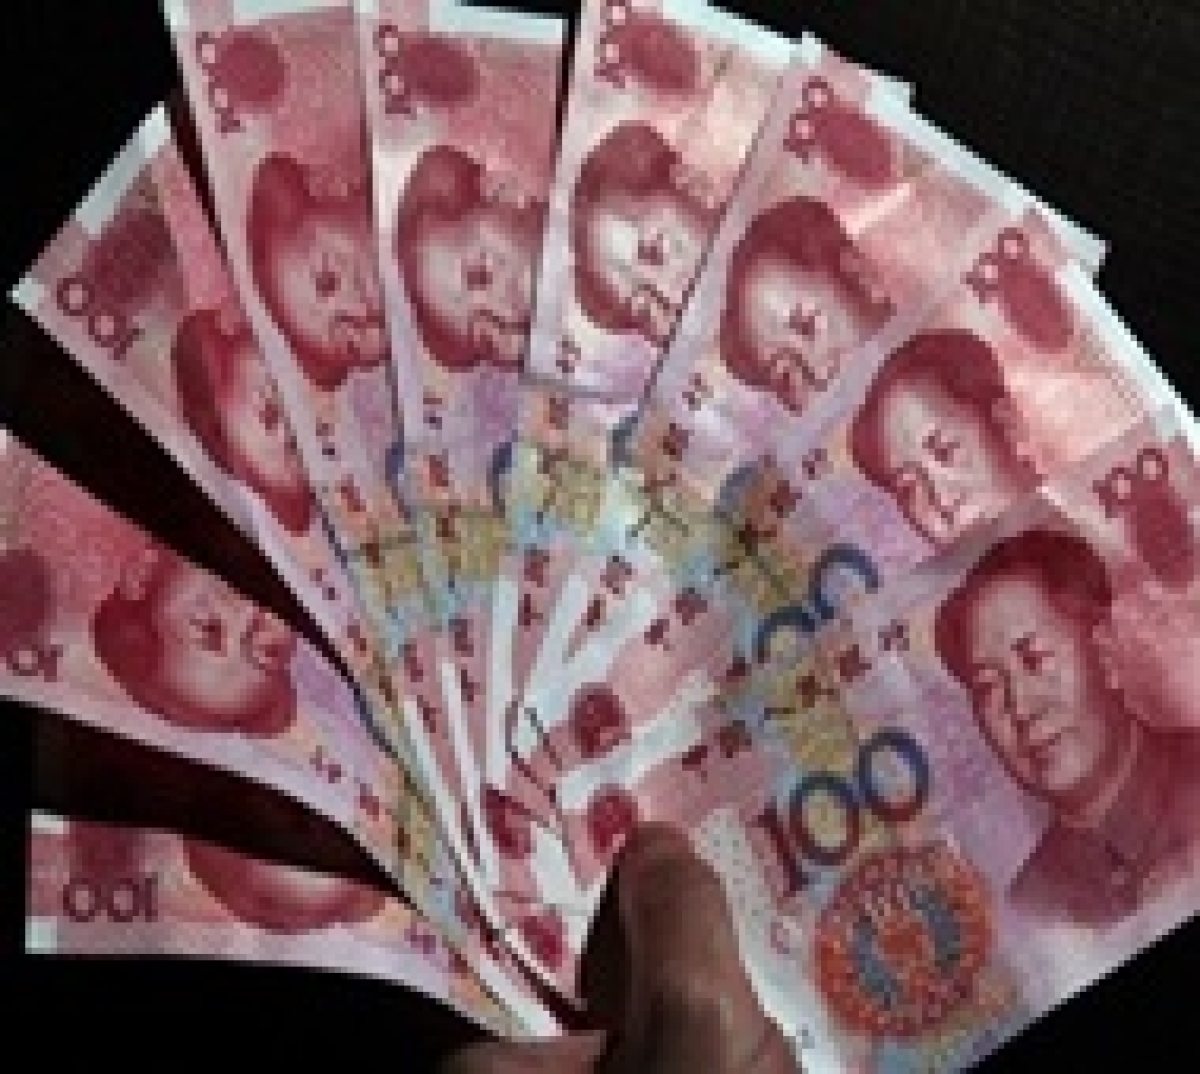 China's central bank drains $16 billion from market